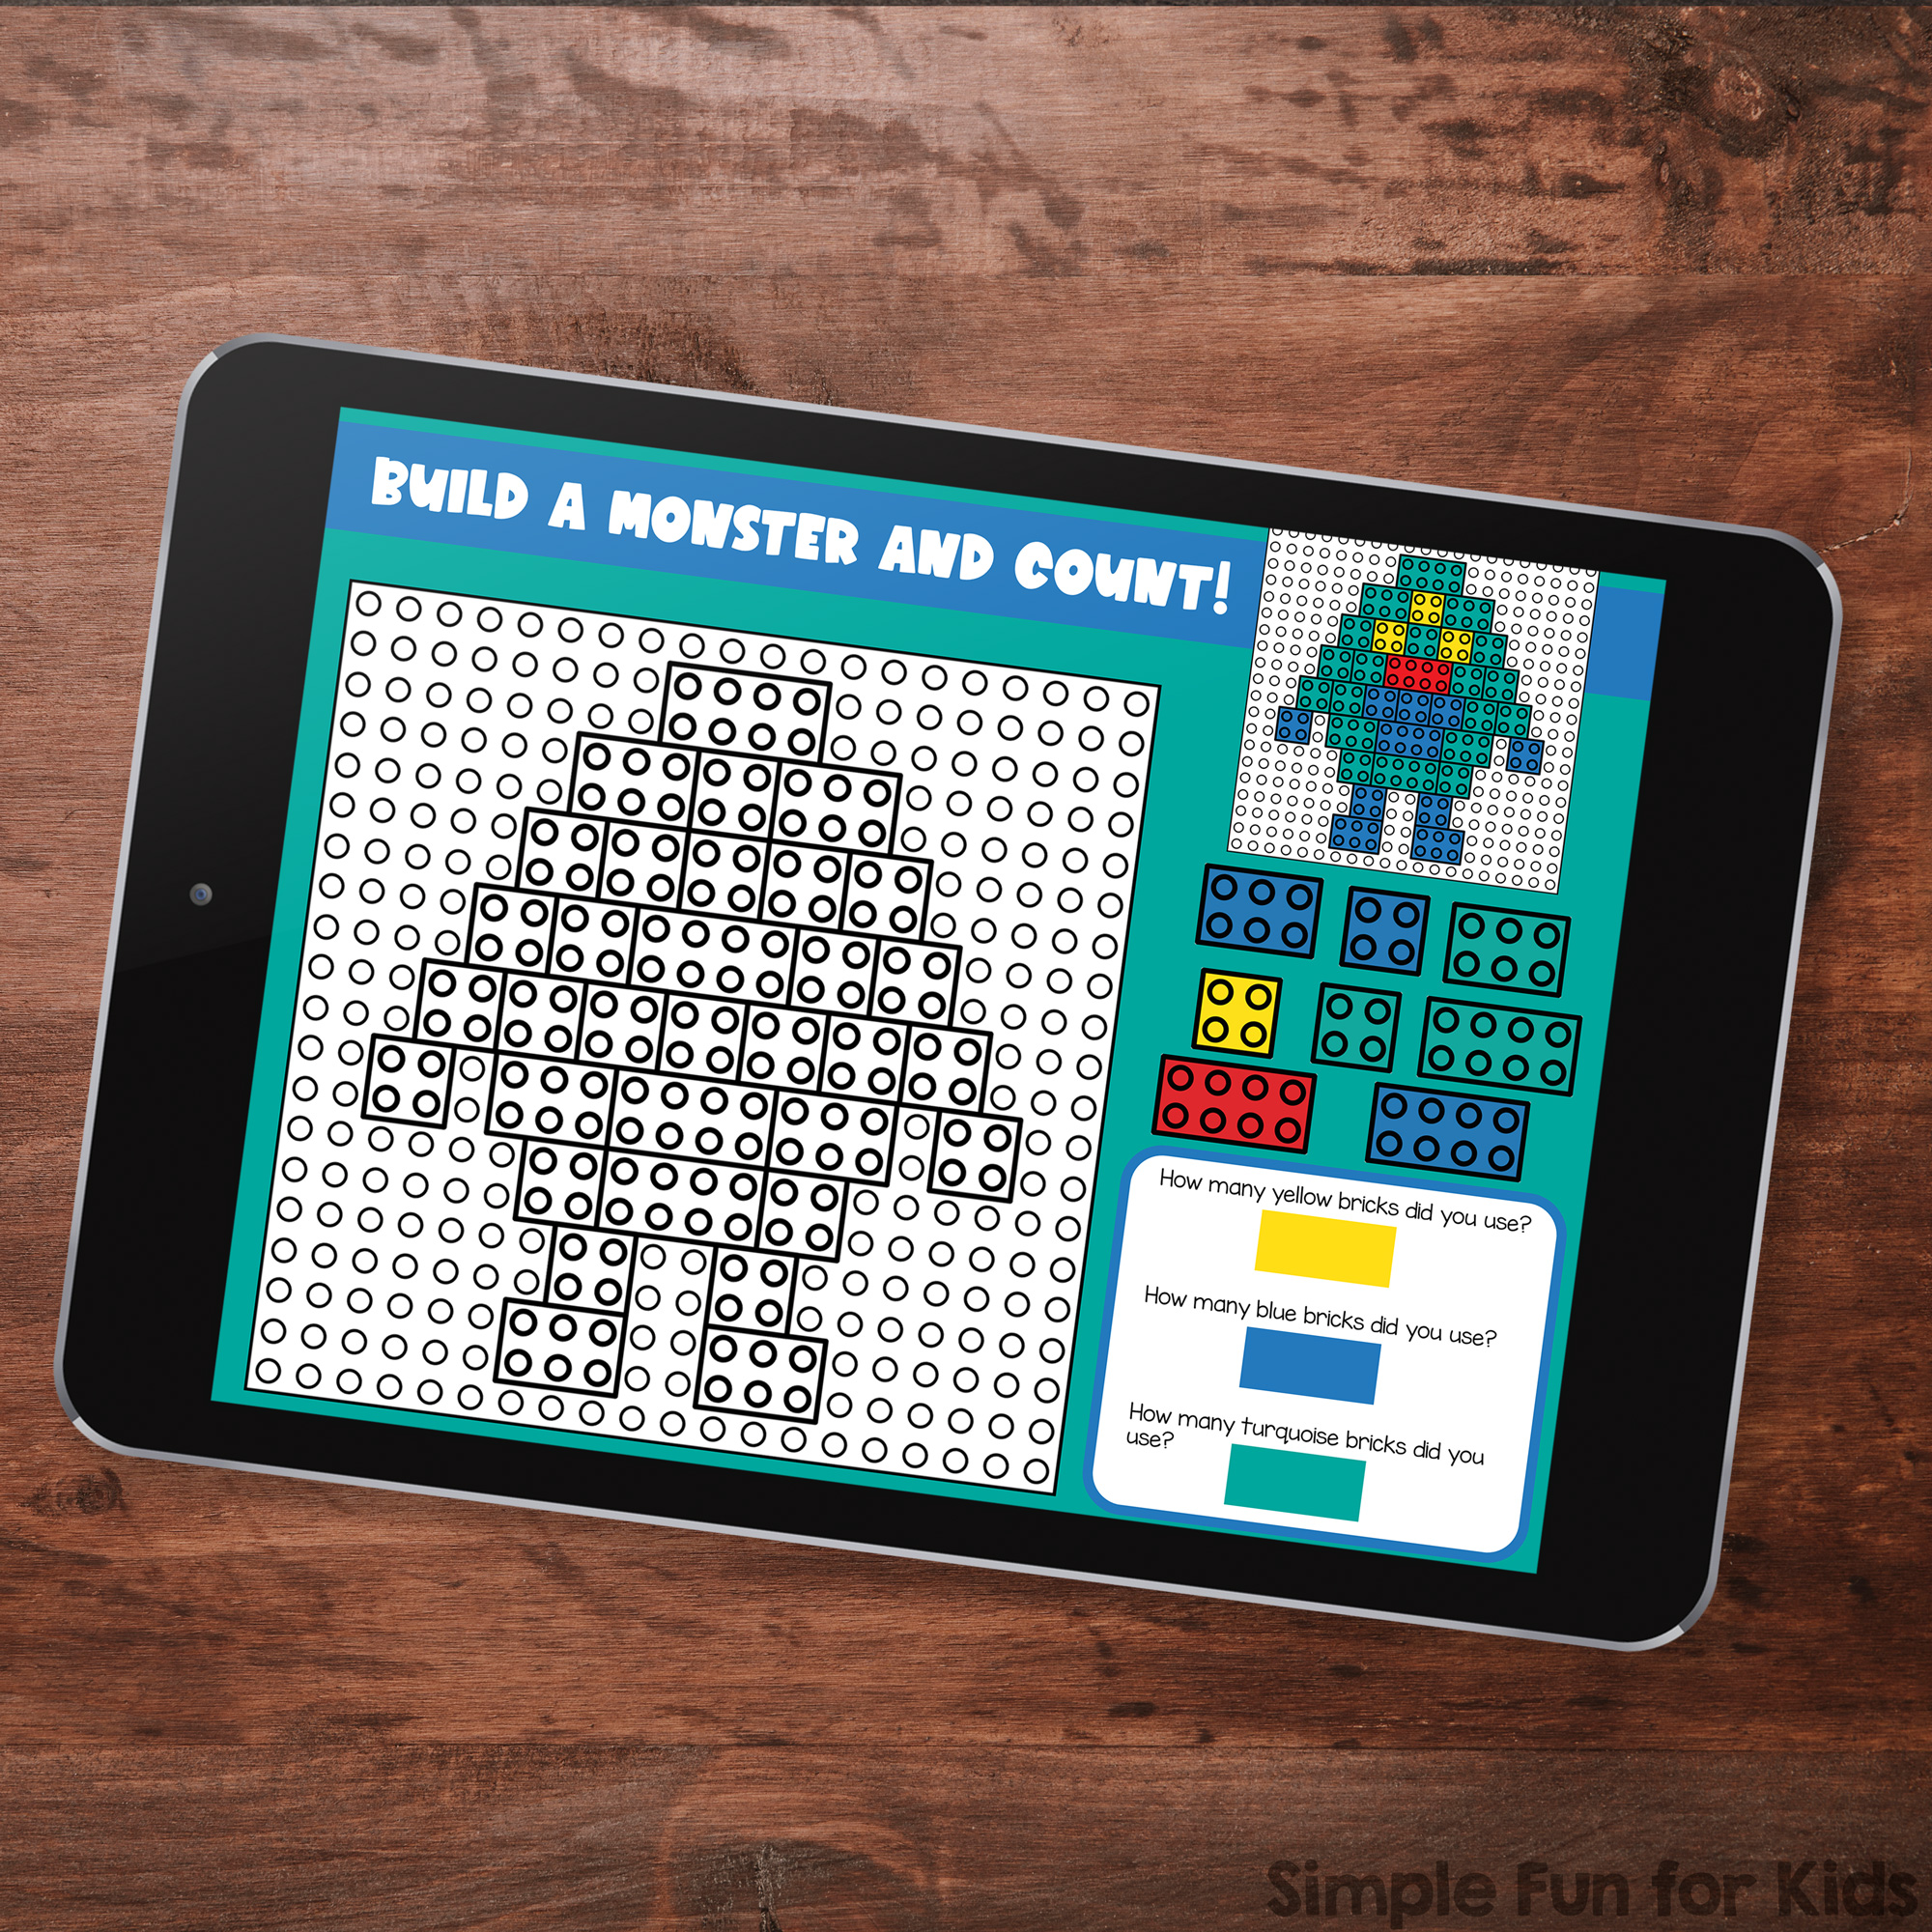 Ten fun monster-themed digital LEGO challenges for Google Slides and Google Classroom. Students can practice skills such as copying & pasting, dragging & dropping, typing in text boxes, and counting in a super-engaging way.